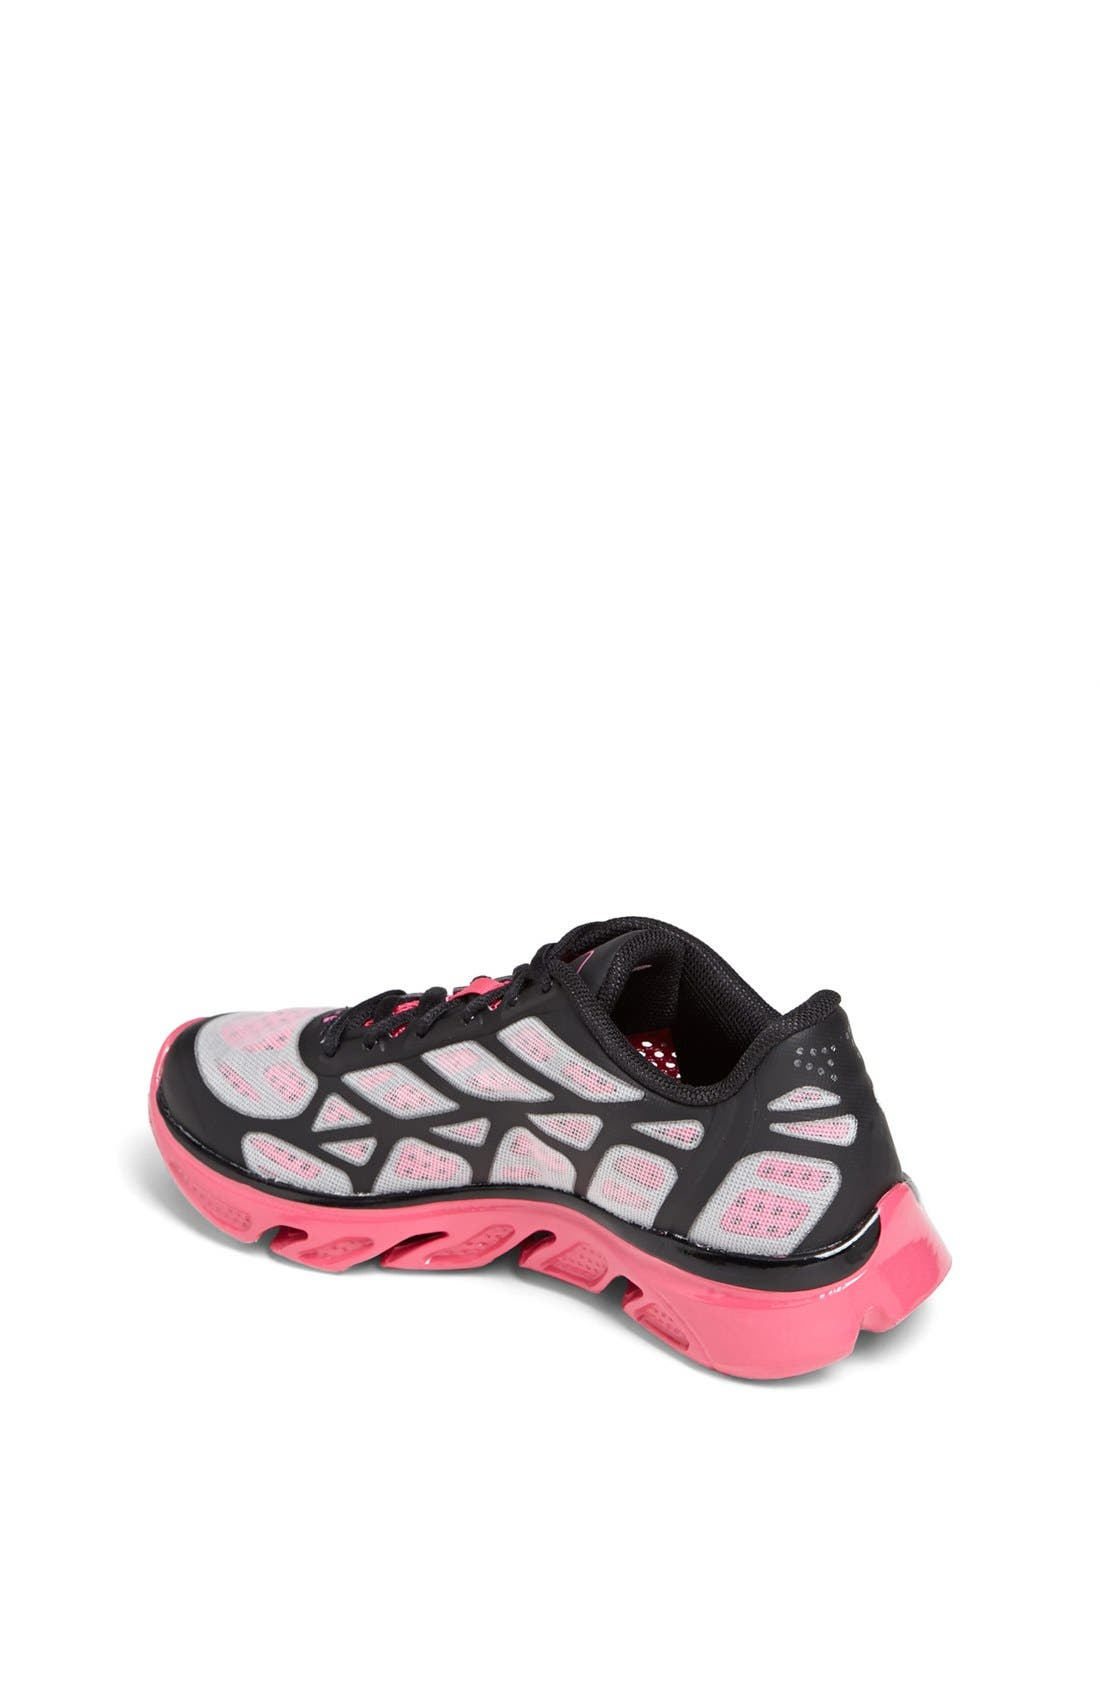 Alternate Image 2  - Under Armour 'Spine™ Vice Breast Cancer Awareness' Athletic Shoe (Big Kid)